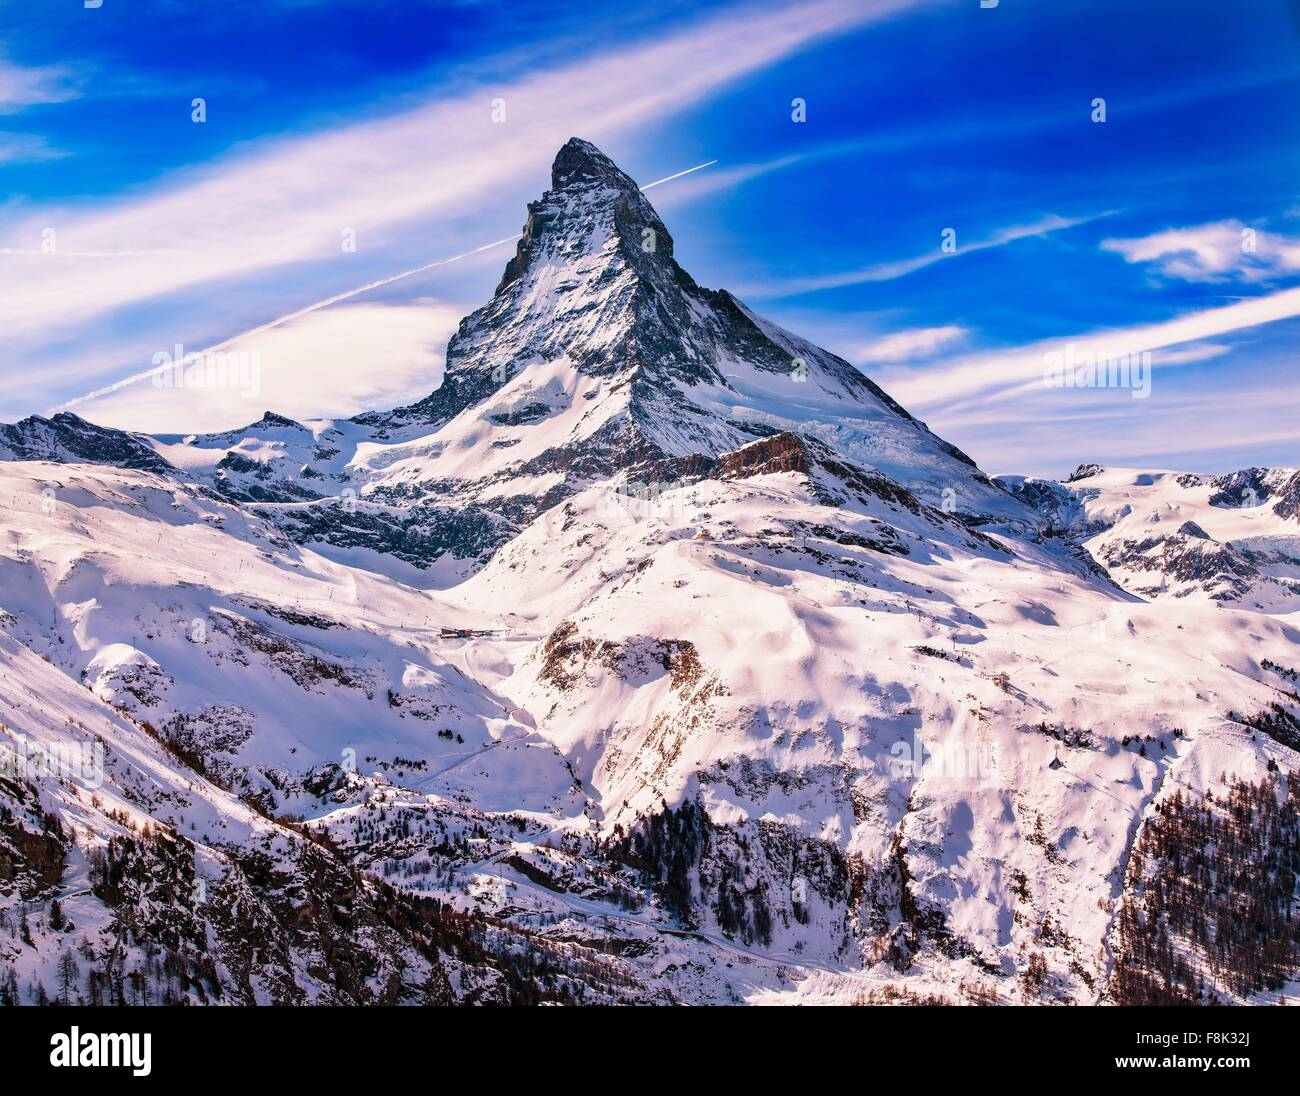 Elevated view of snow covered Matterhorn, Zermatt, Switzerland - Stock Image